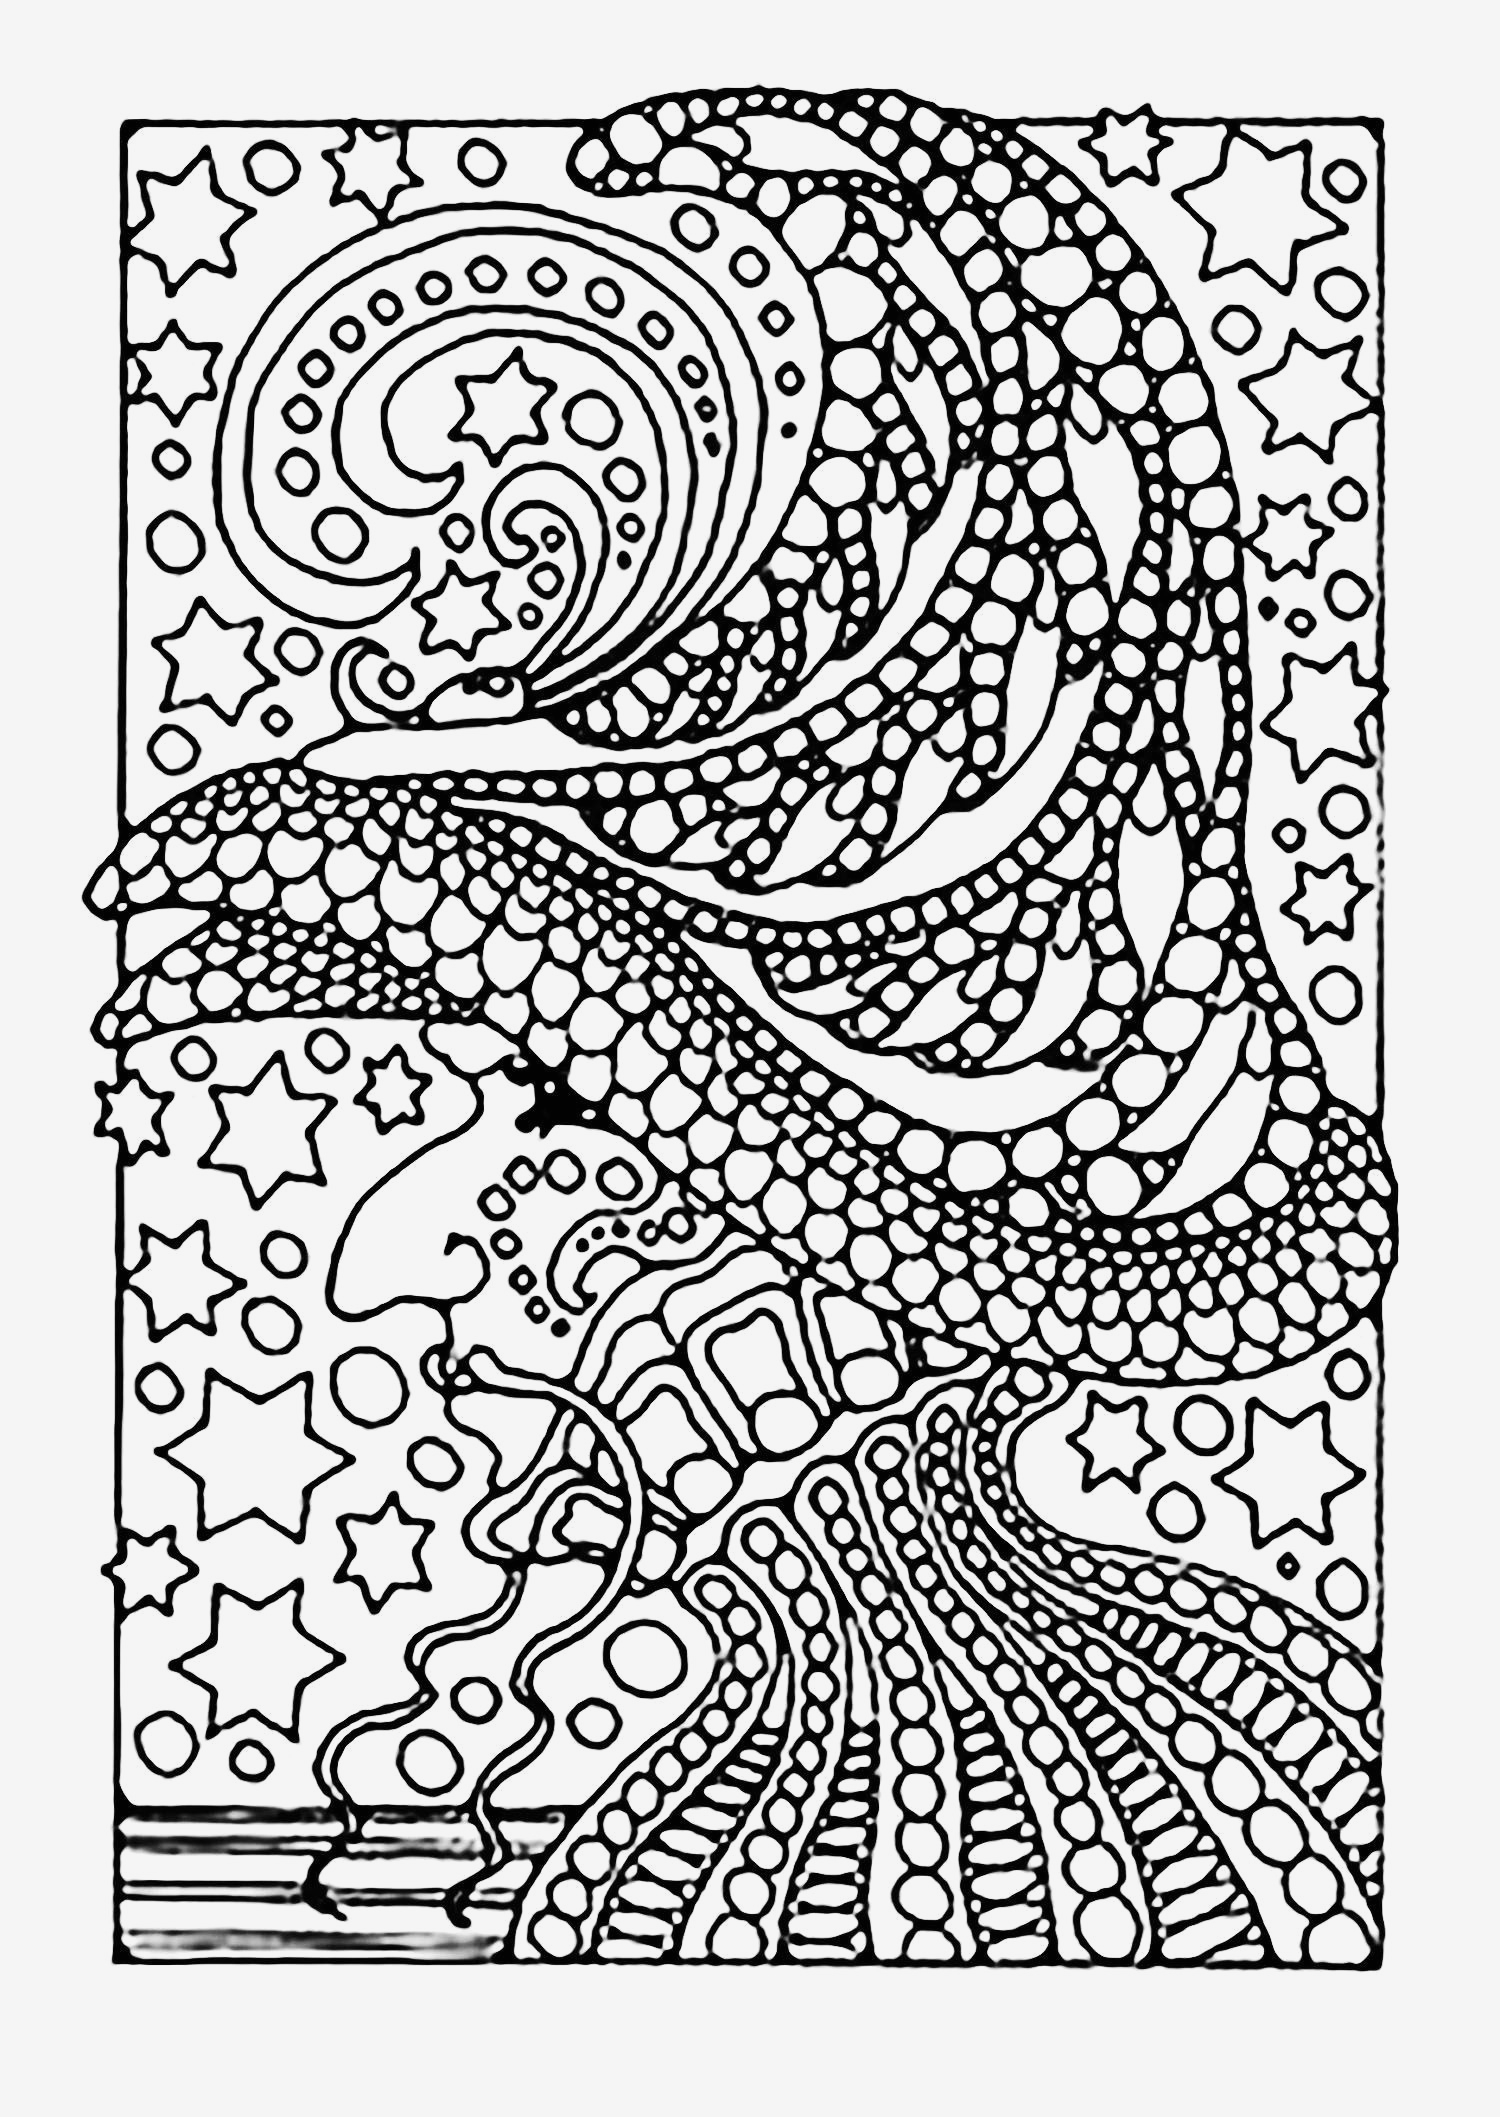 Marker Coloring Pages  Collection 1m - Free For Children